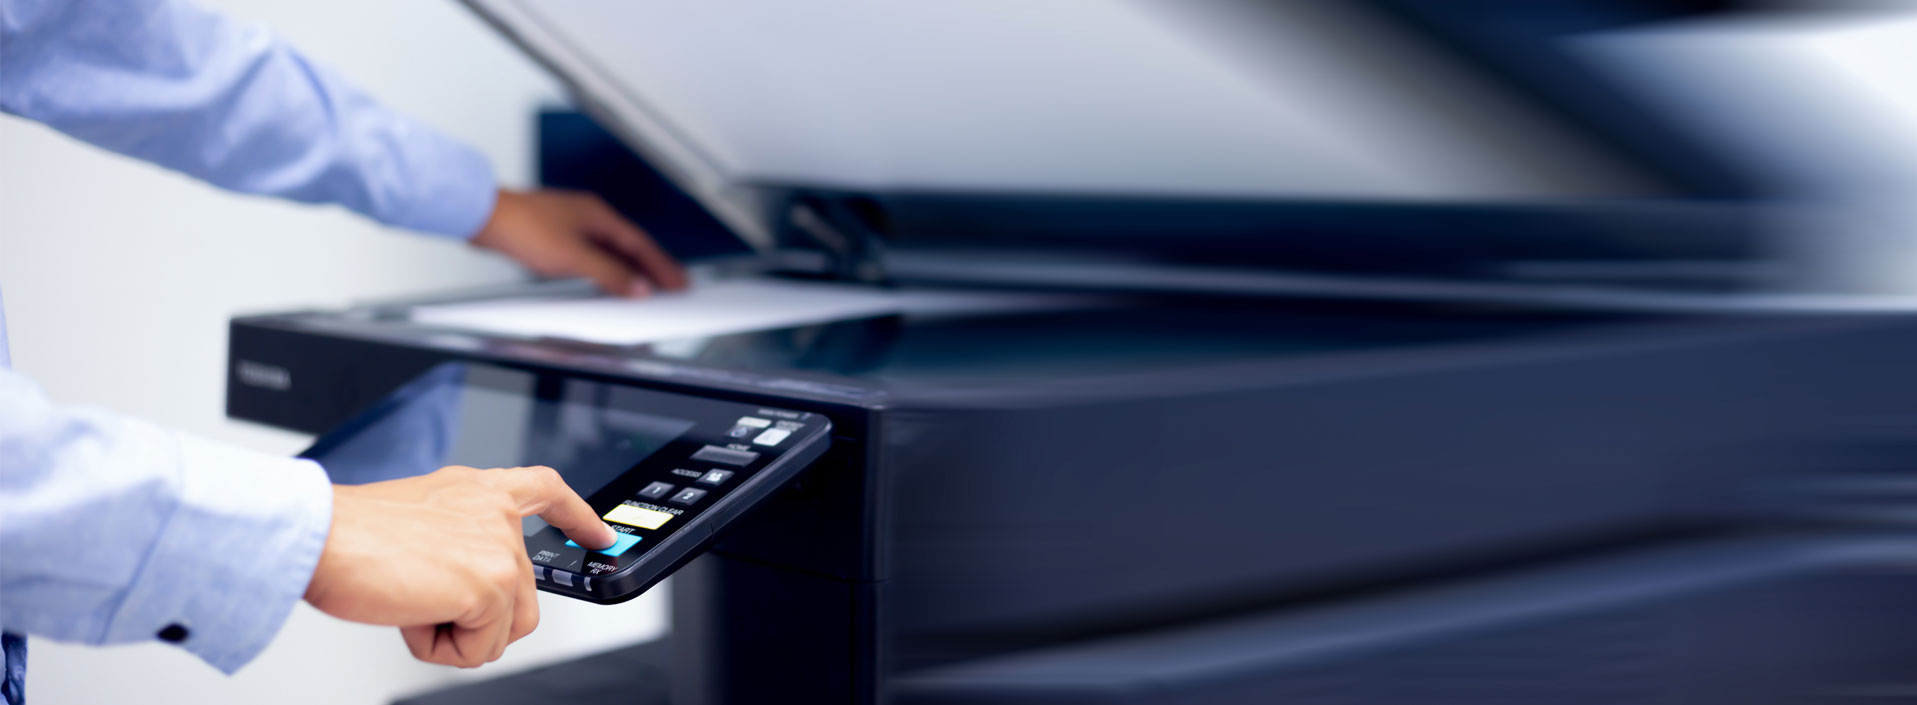 Compare Quotes for Buying or Leasing Printers & Copiers